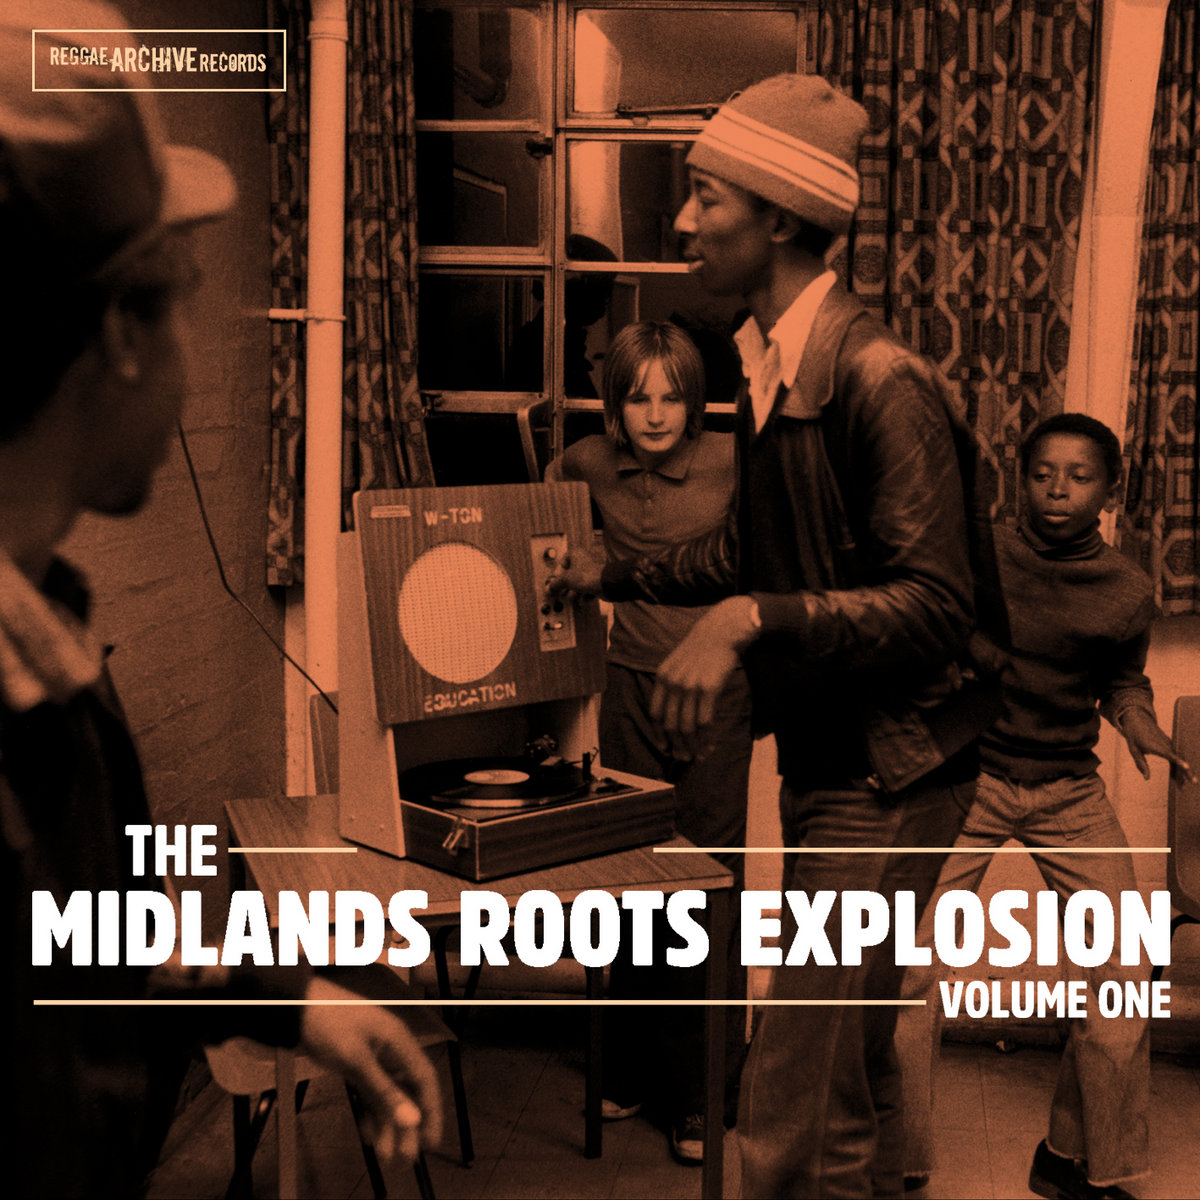 The Midlands Roots Explosion Volume One | Reggae Archive Records